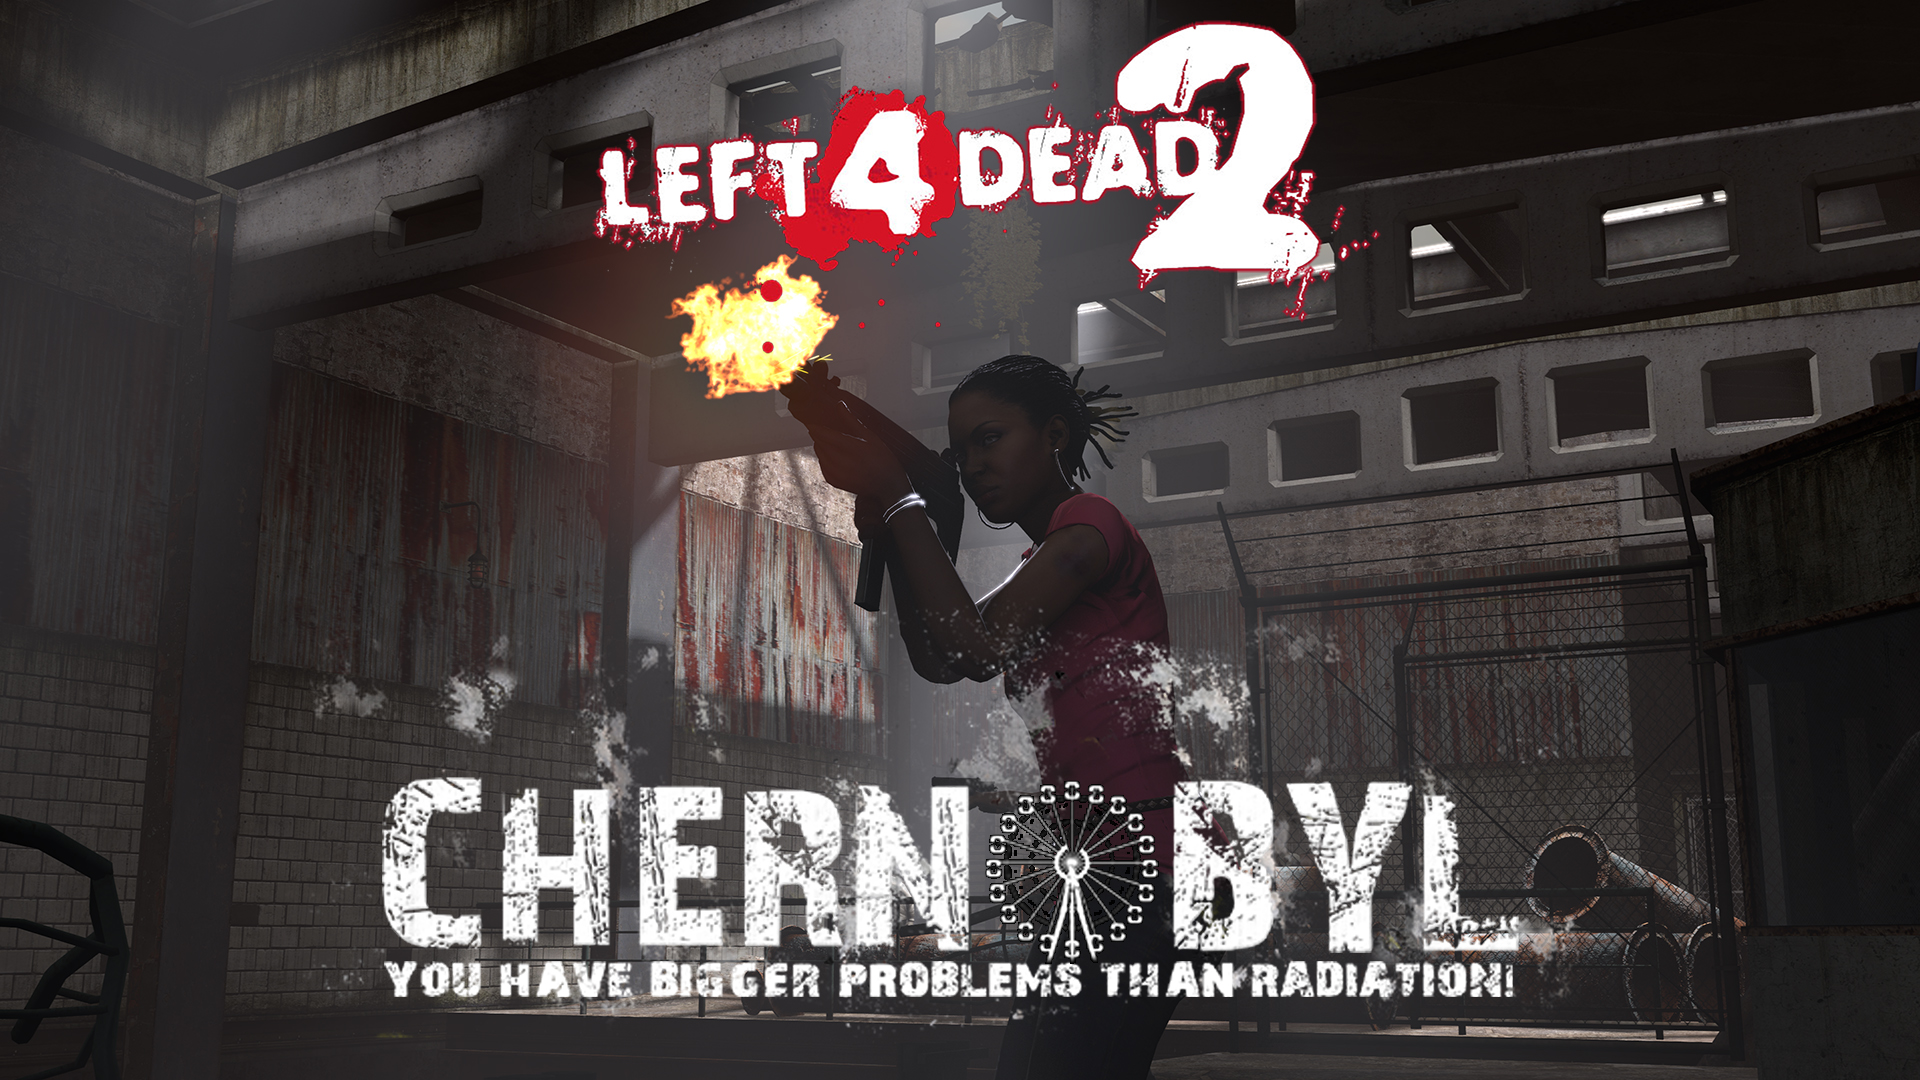 Chernobyl fan campaign has been released.